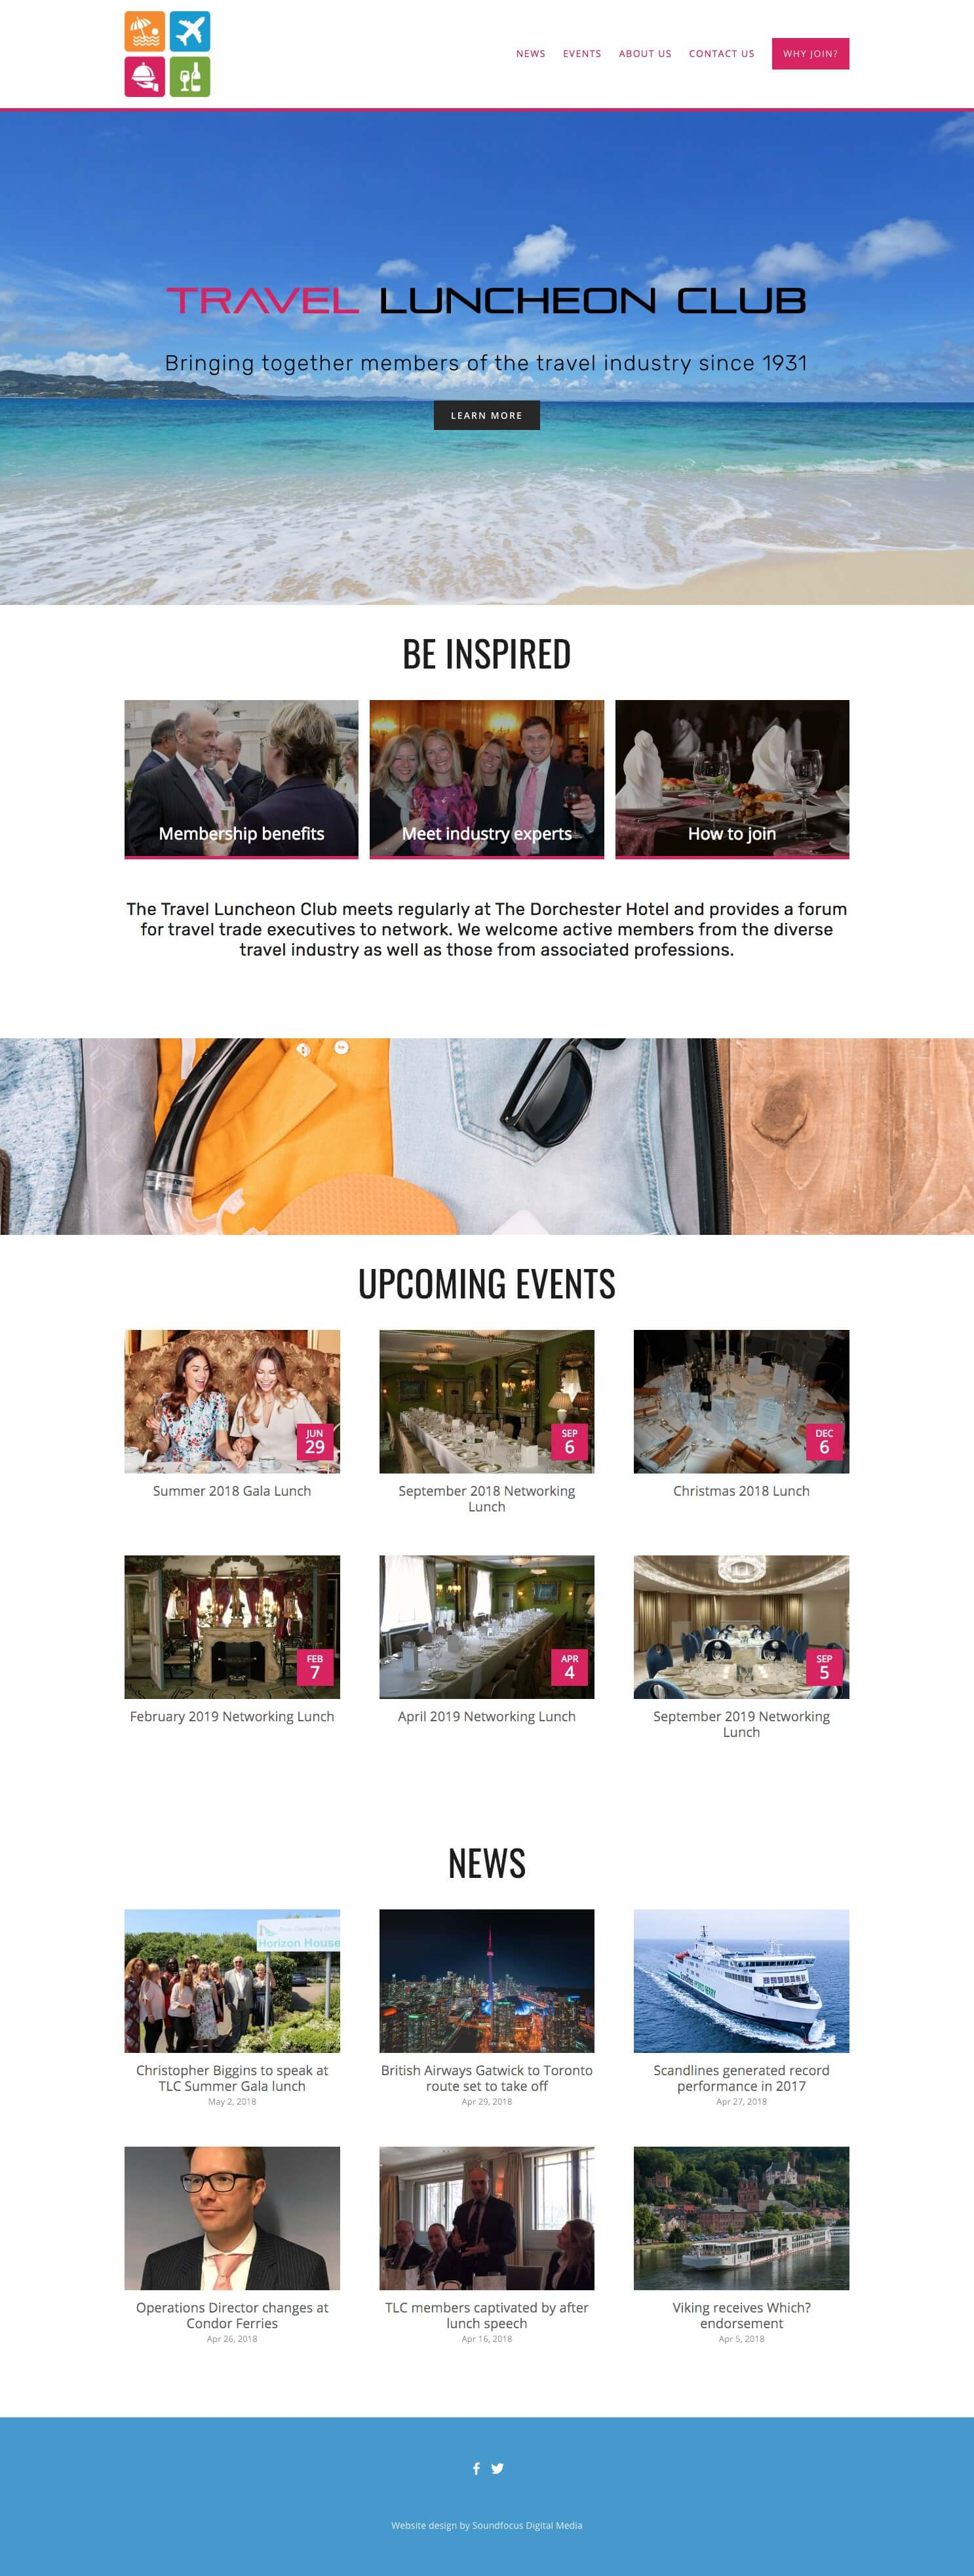 Example responsive website page from their website